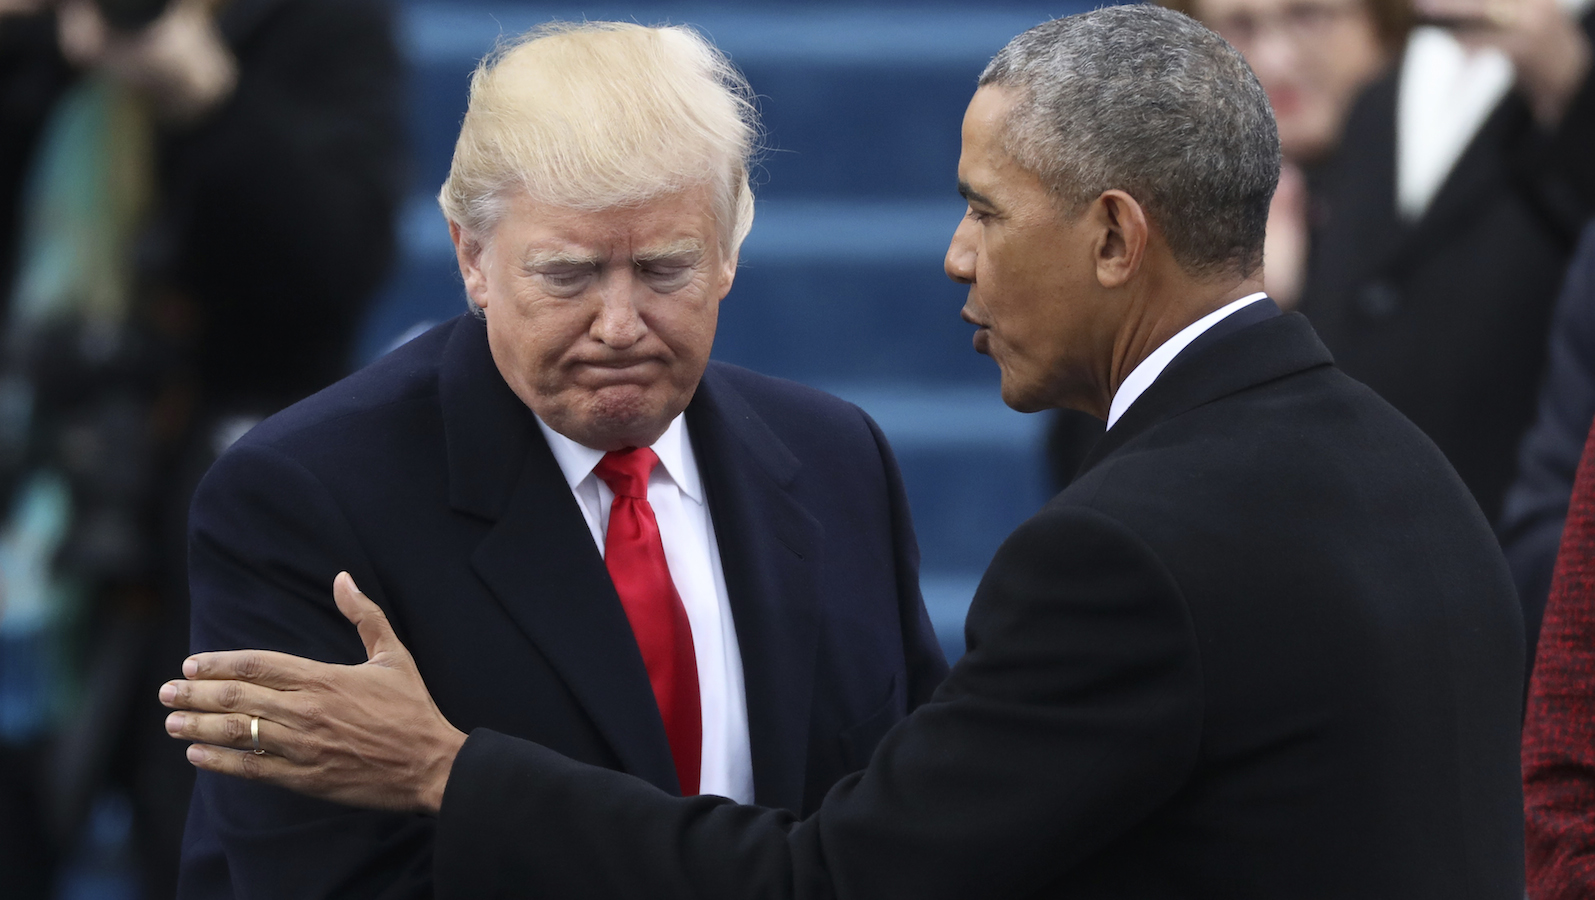 Donald trumps new presidential twitter twtr page already has a president barack obama r greets president elect donald trump at inauguration ceremonies swearing in m4hsunfo